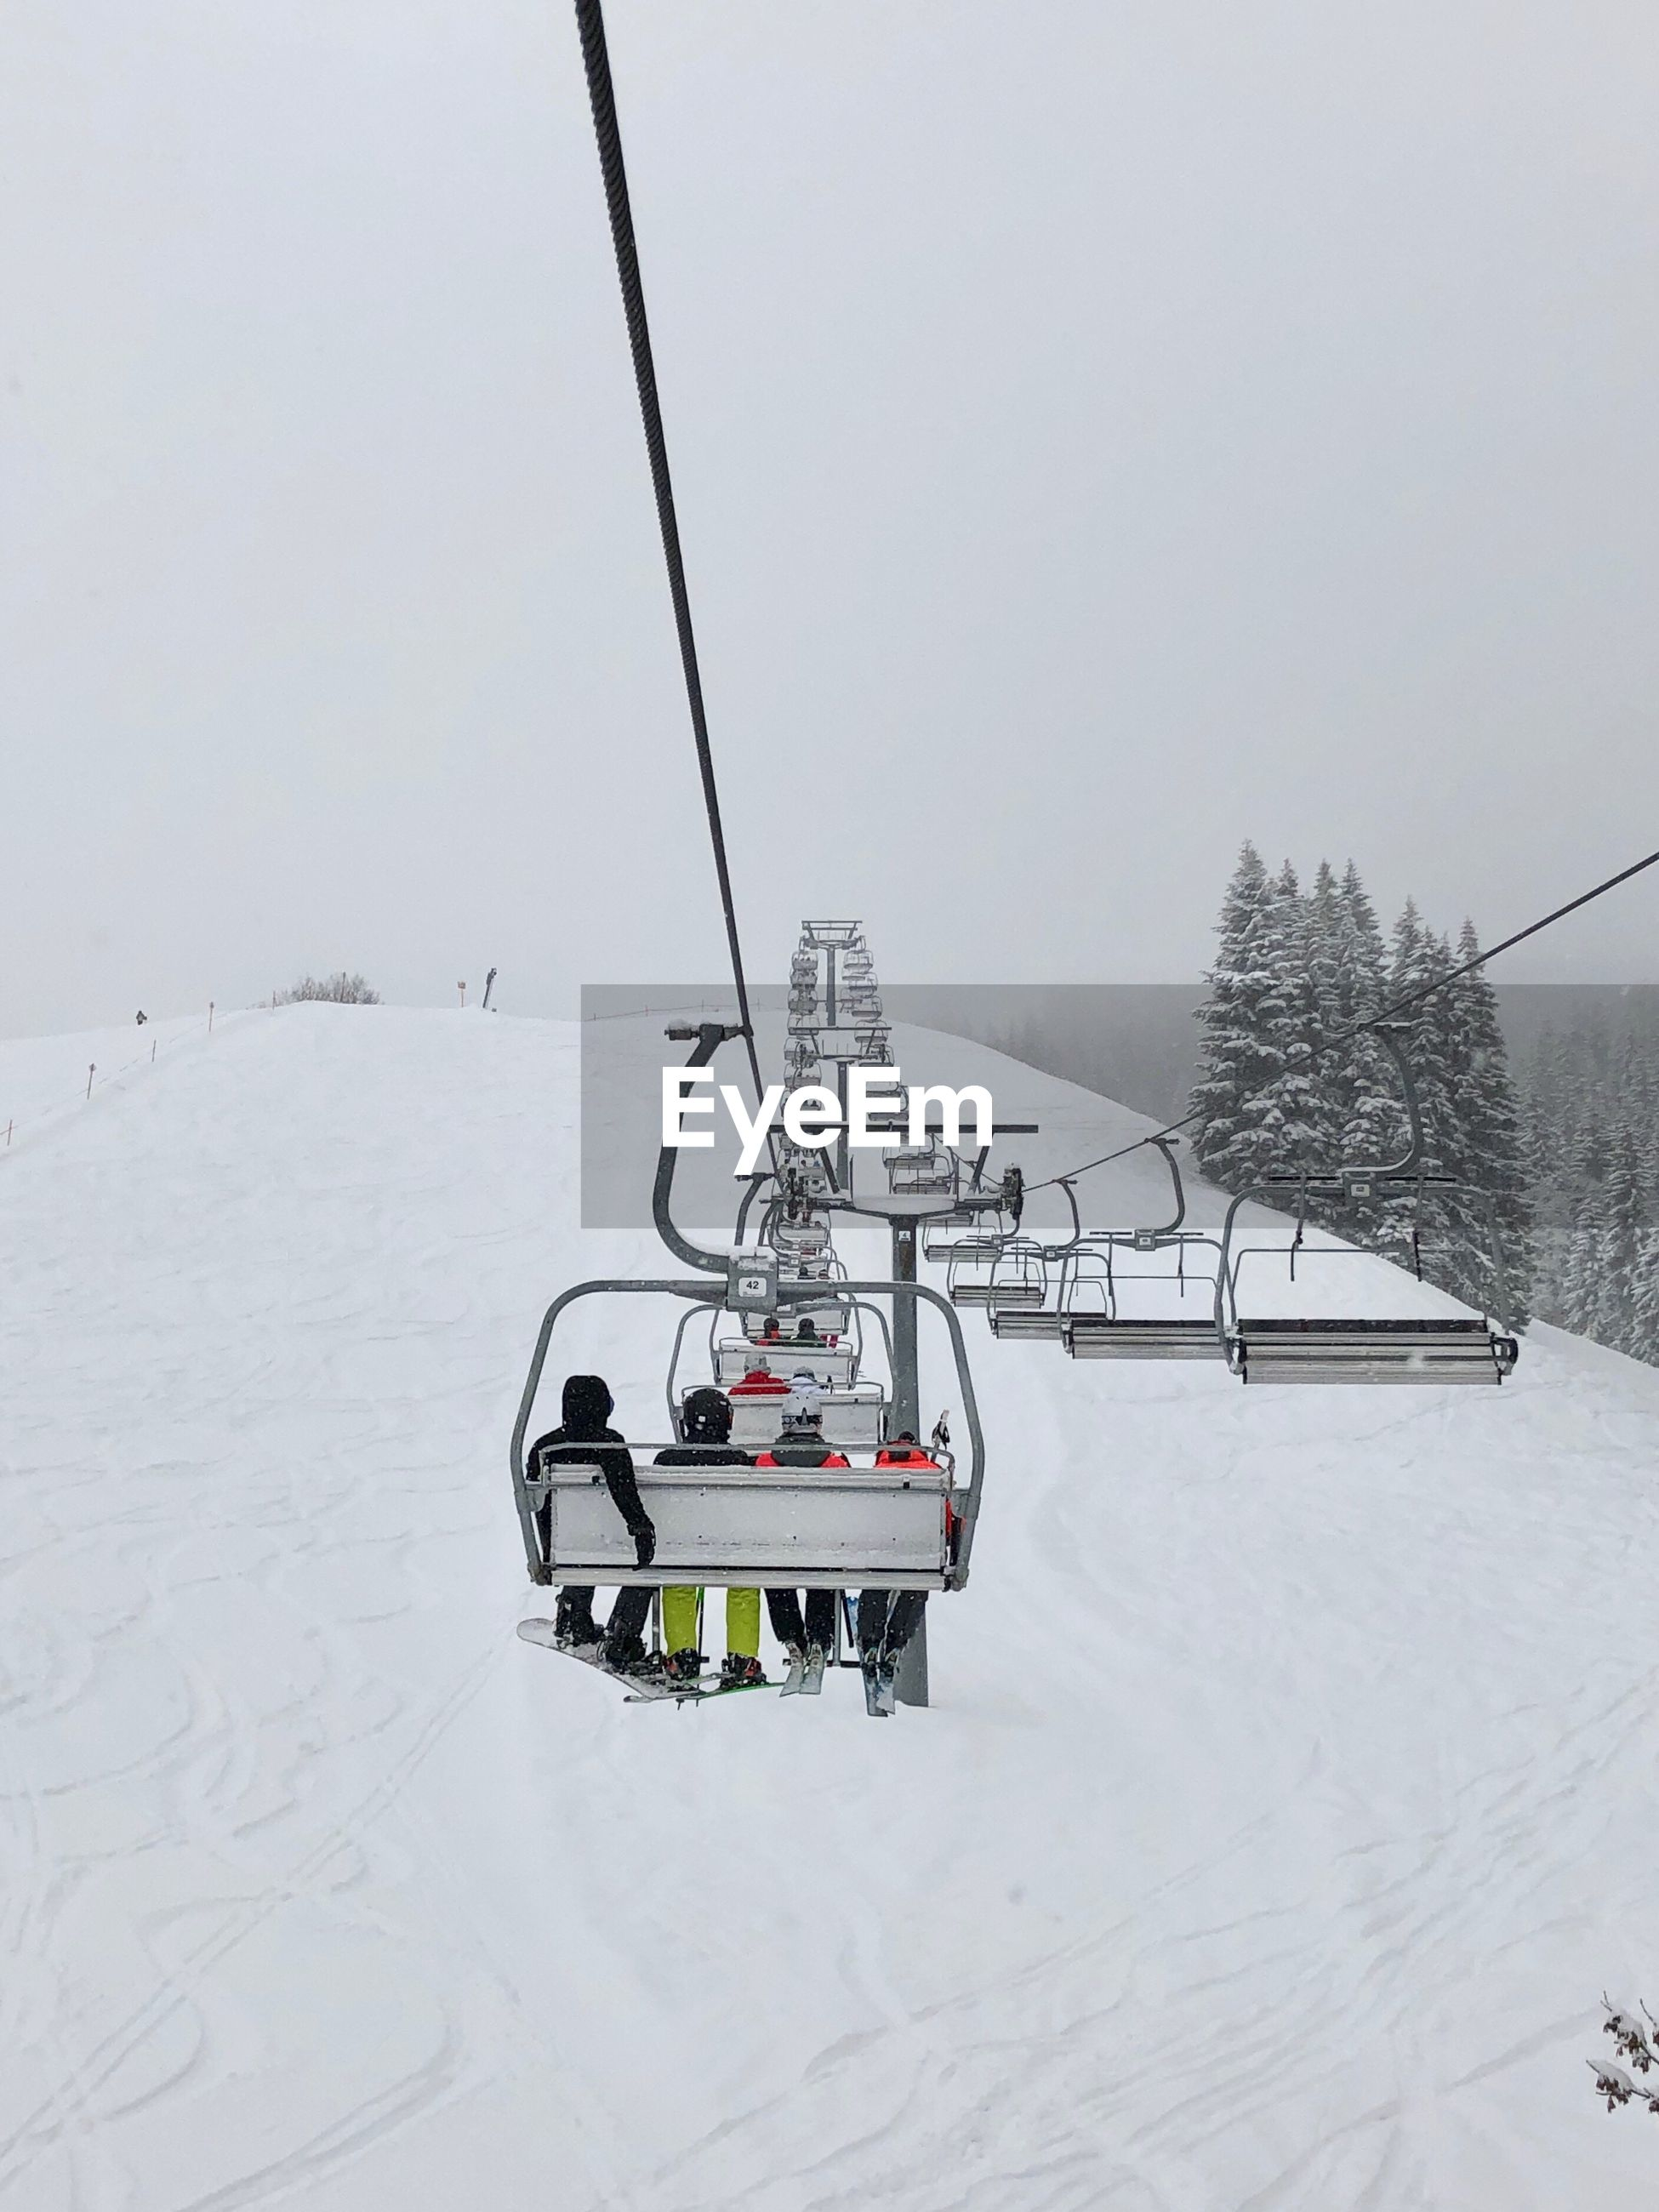 cold temperature, snow, winter, transportation, mode of transportation, beauty in nature, nature, ski lift, white color, cable car, overhead cable car, covering, day, sky, scenics - nature, land, cable, incidental people, outdoors, snowcapped mountain